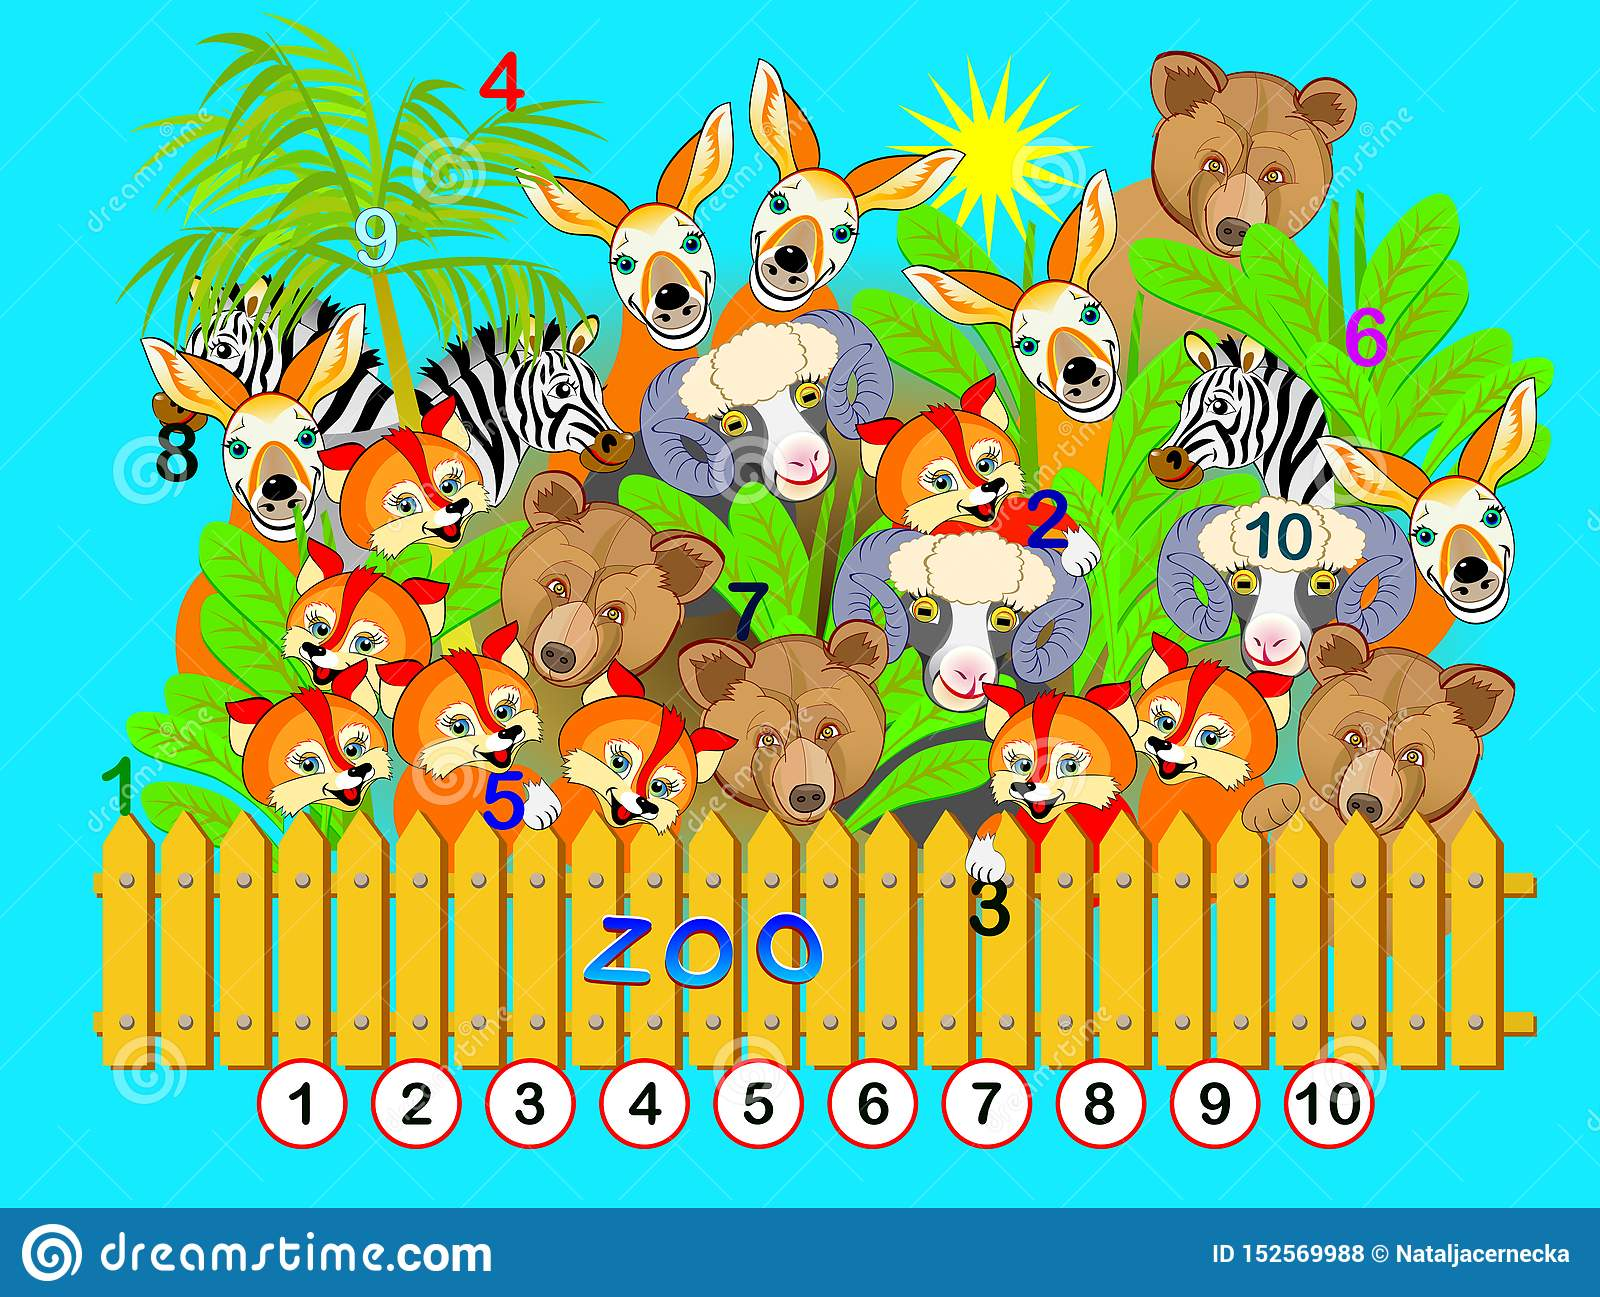 Exercise For Young Children Need To Find The Numbers From